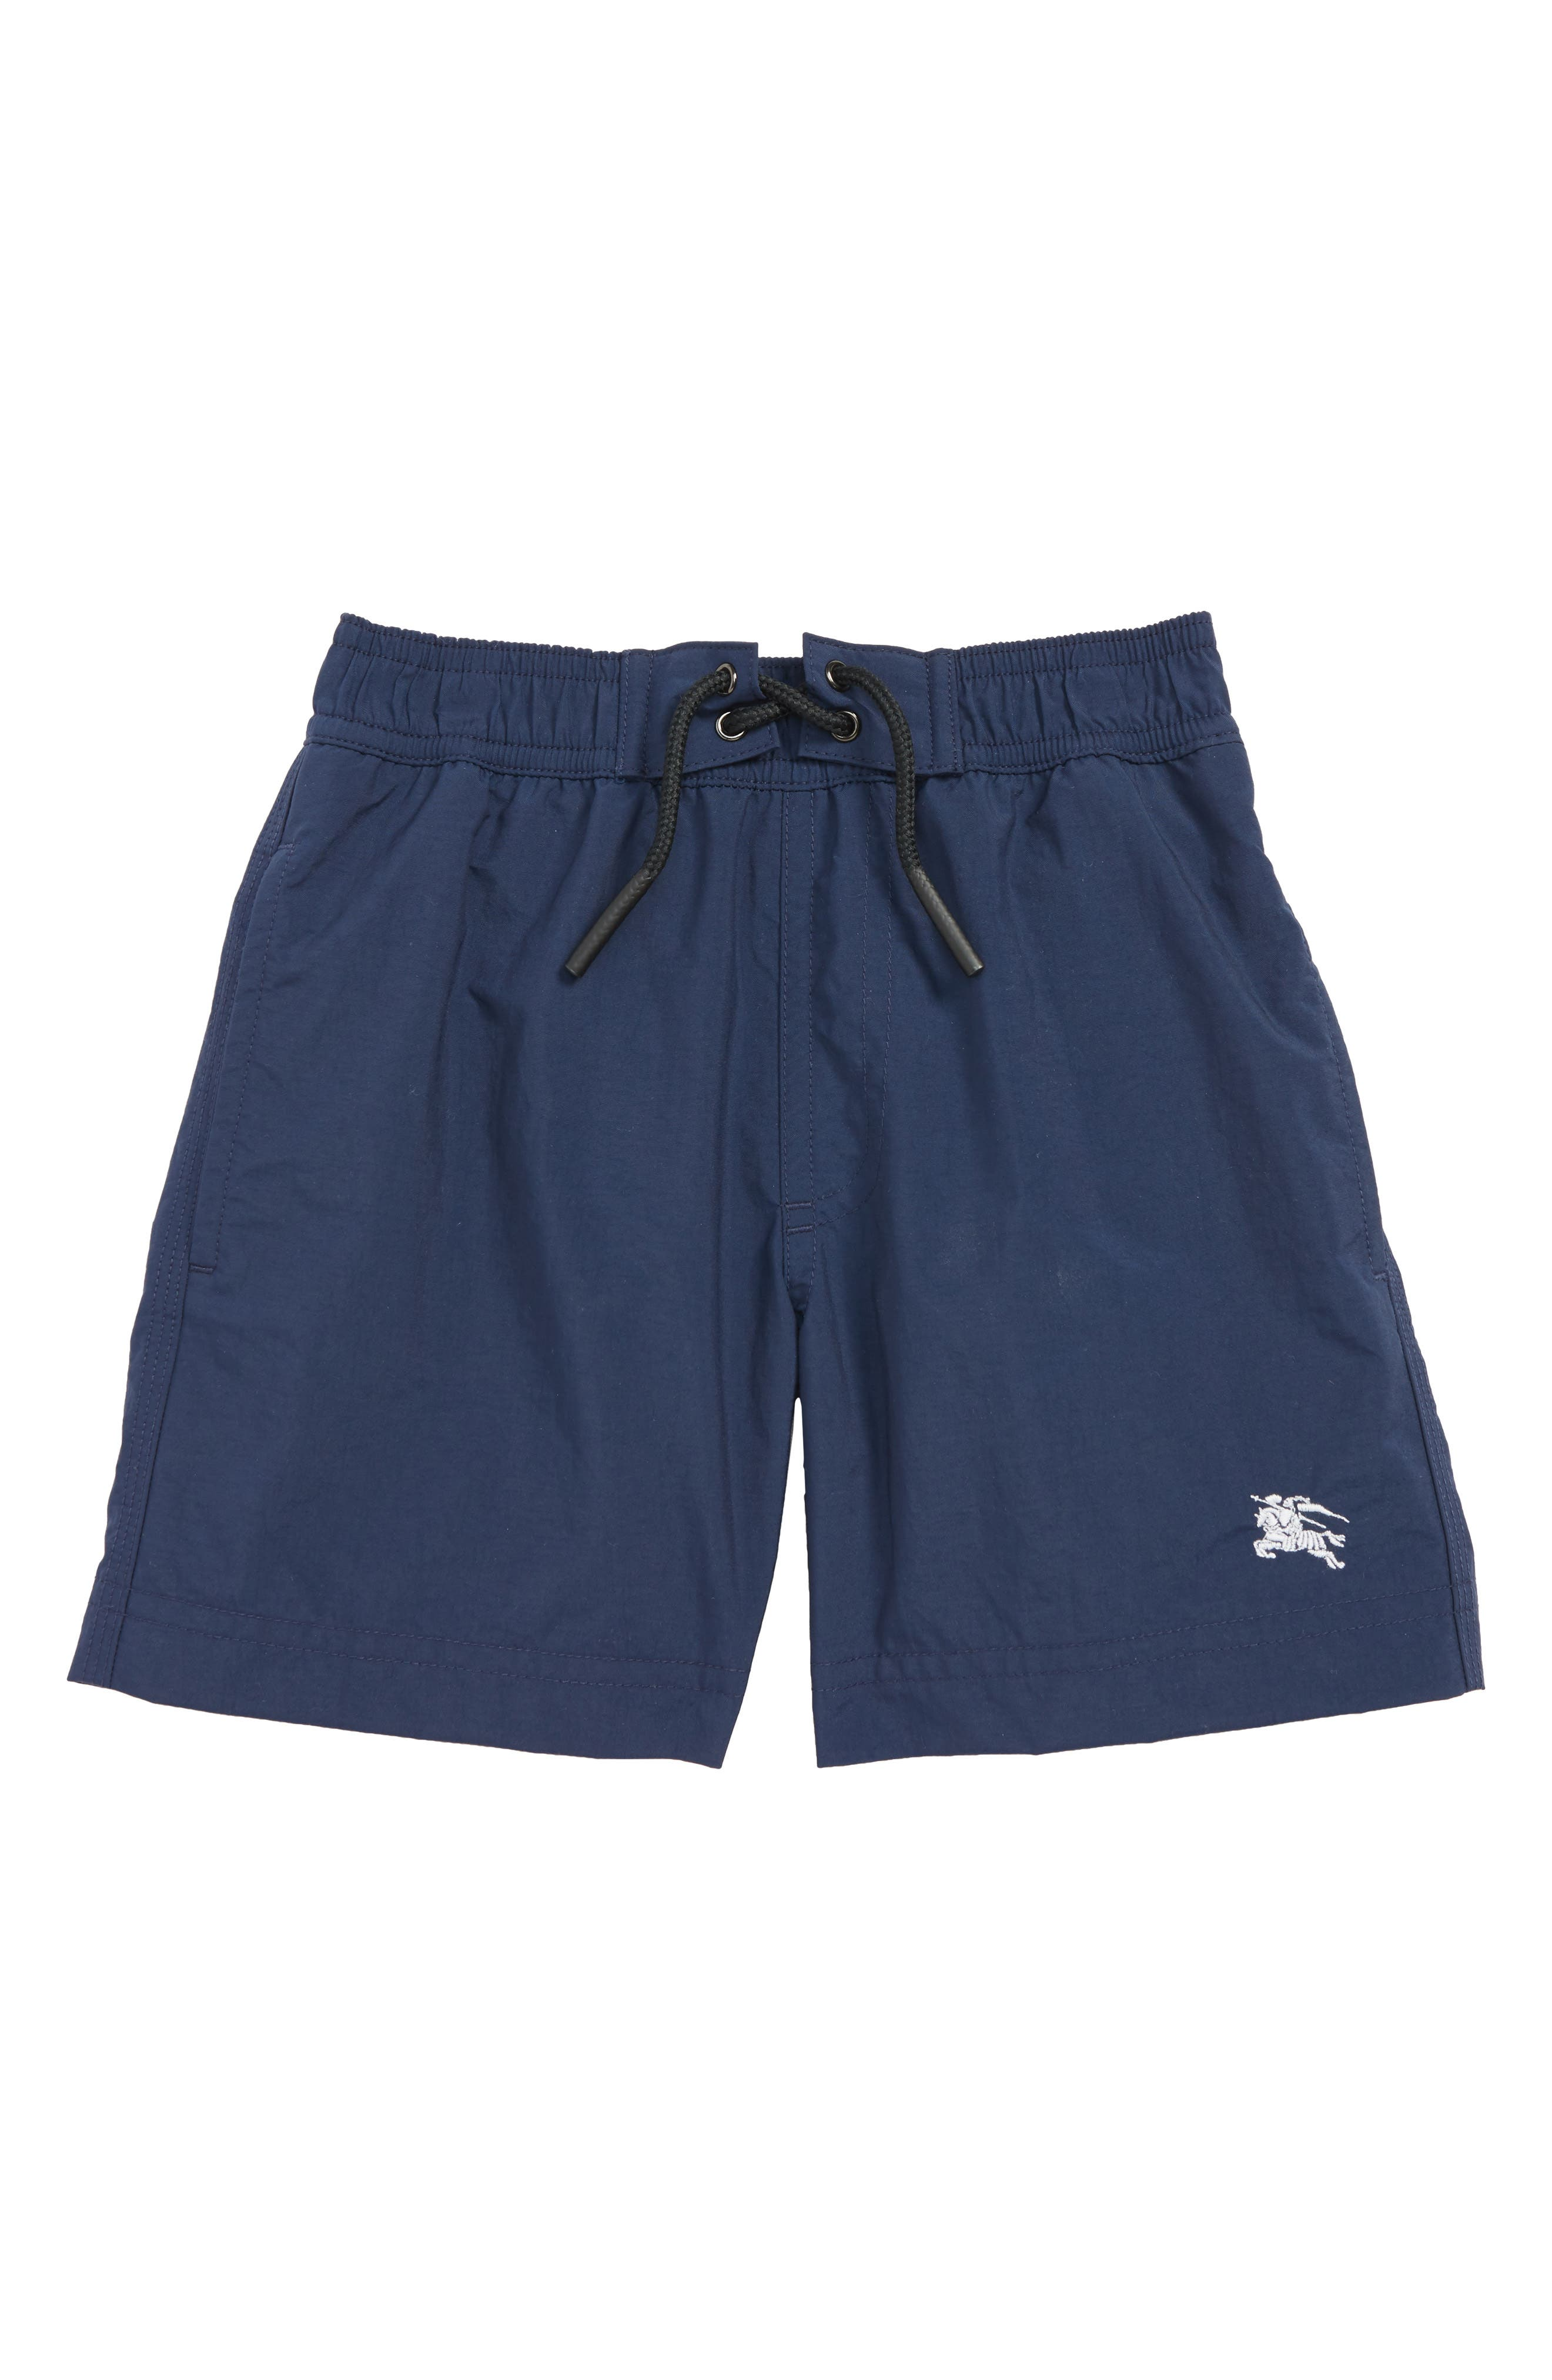 Galvin Swim Trunks,                         Main,                         color, INDIGO